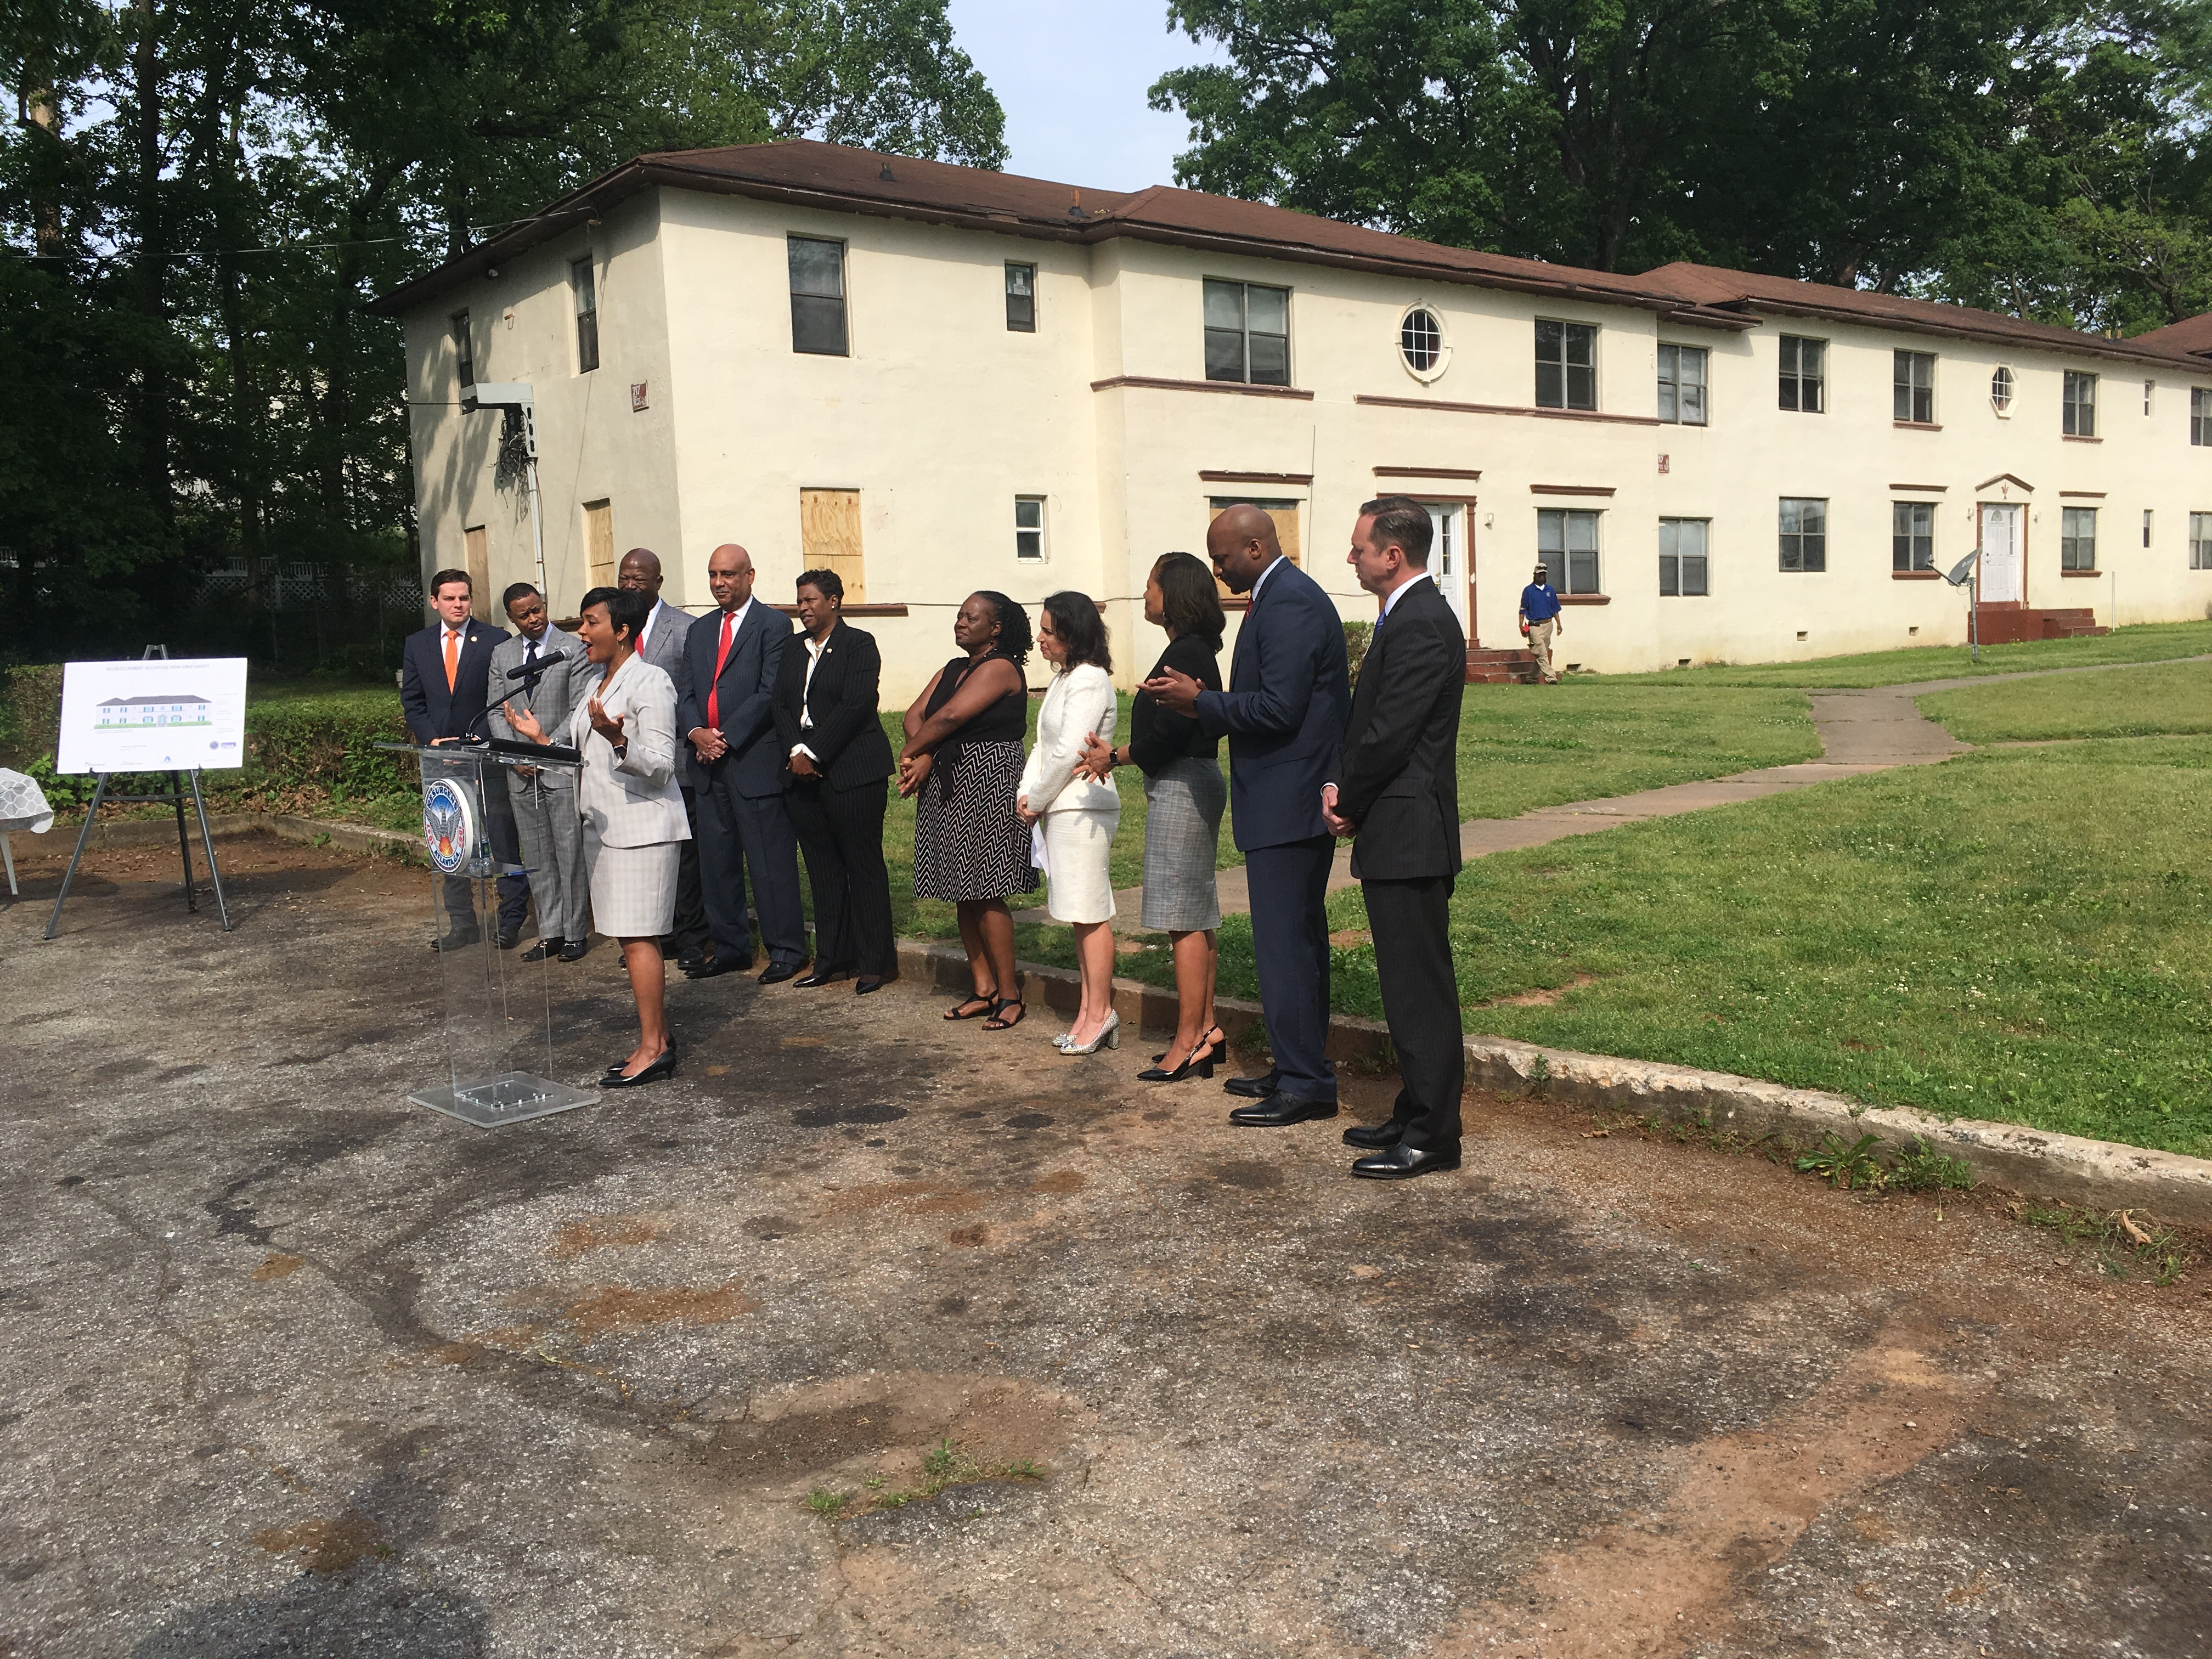 Atlanta Mayor Keisha Lance Bottoms (at podium) and other city leaders at a press conference at Capitol View apartments in Adair Park on April 25, 2019. Credit: Maggie Lee